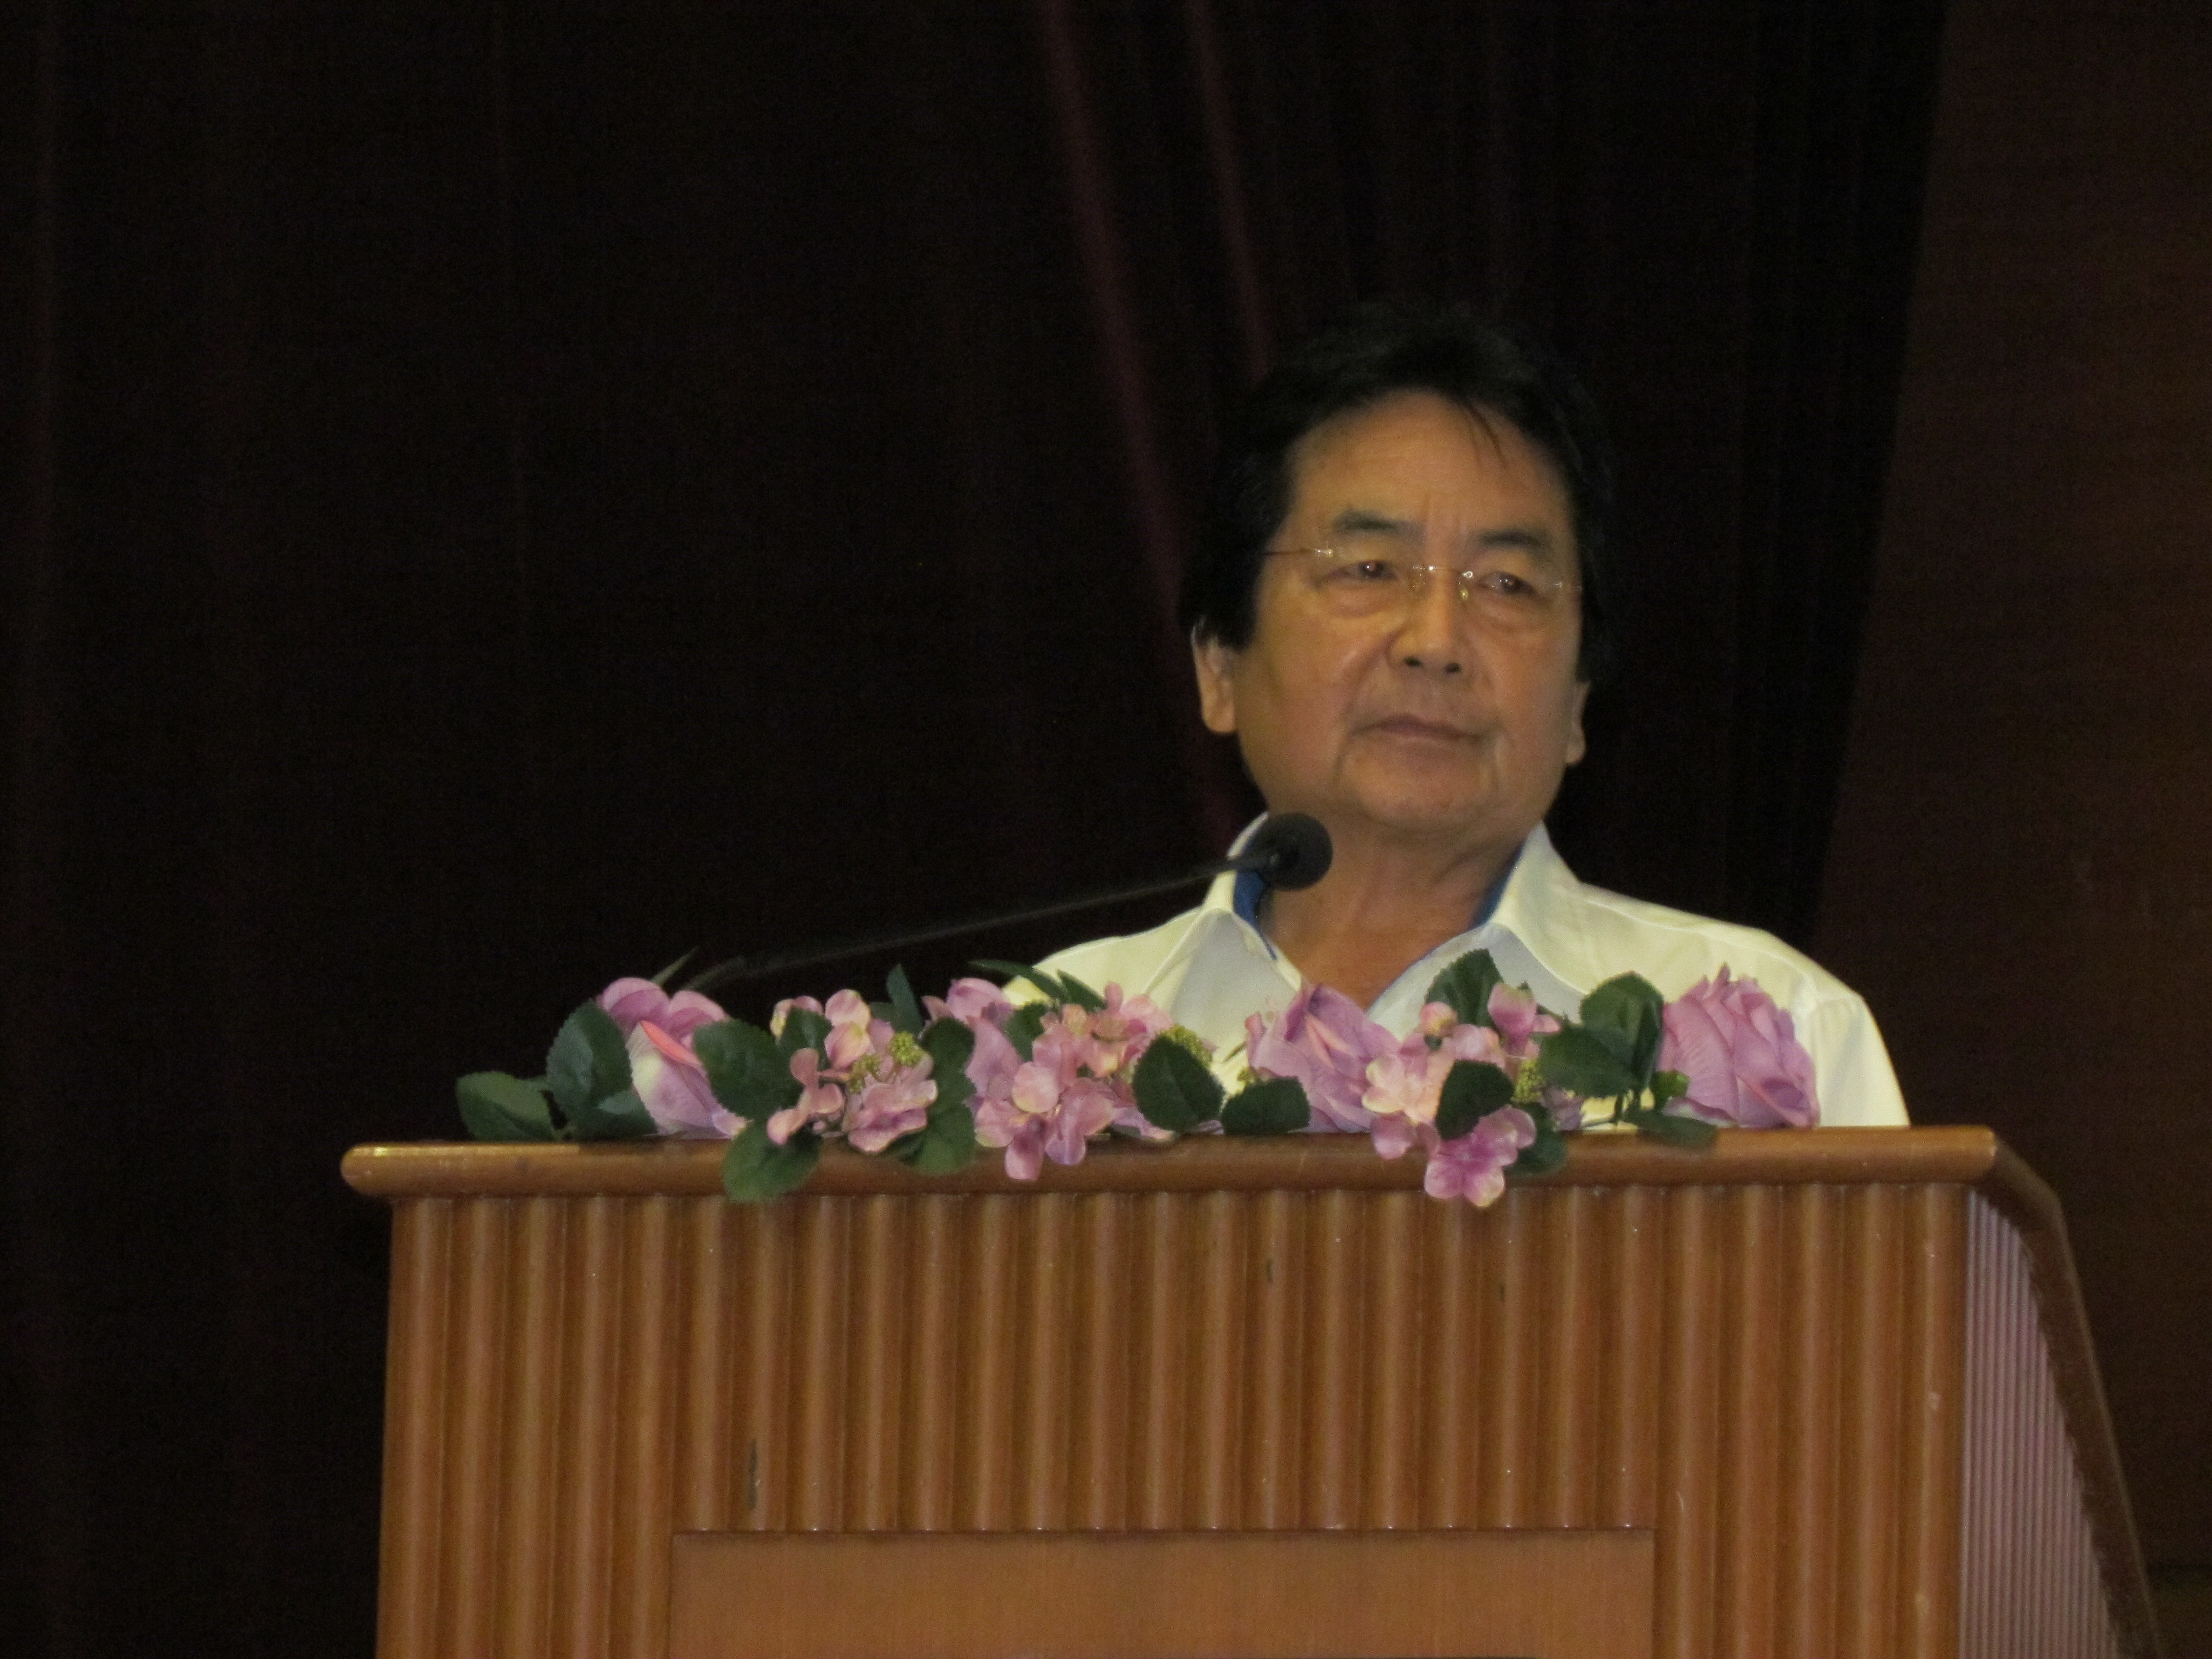 Minister Tan Sri Joseph Kurup closing the WIHW 2015 in Putra Jaya.JPG